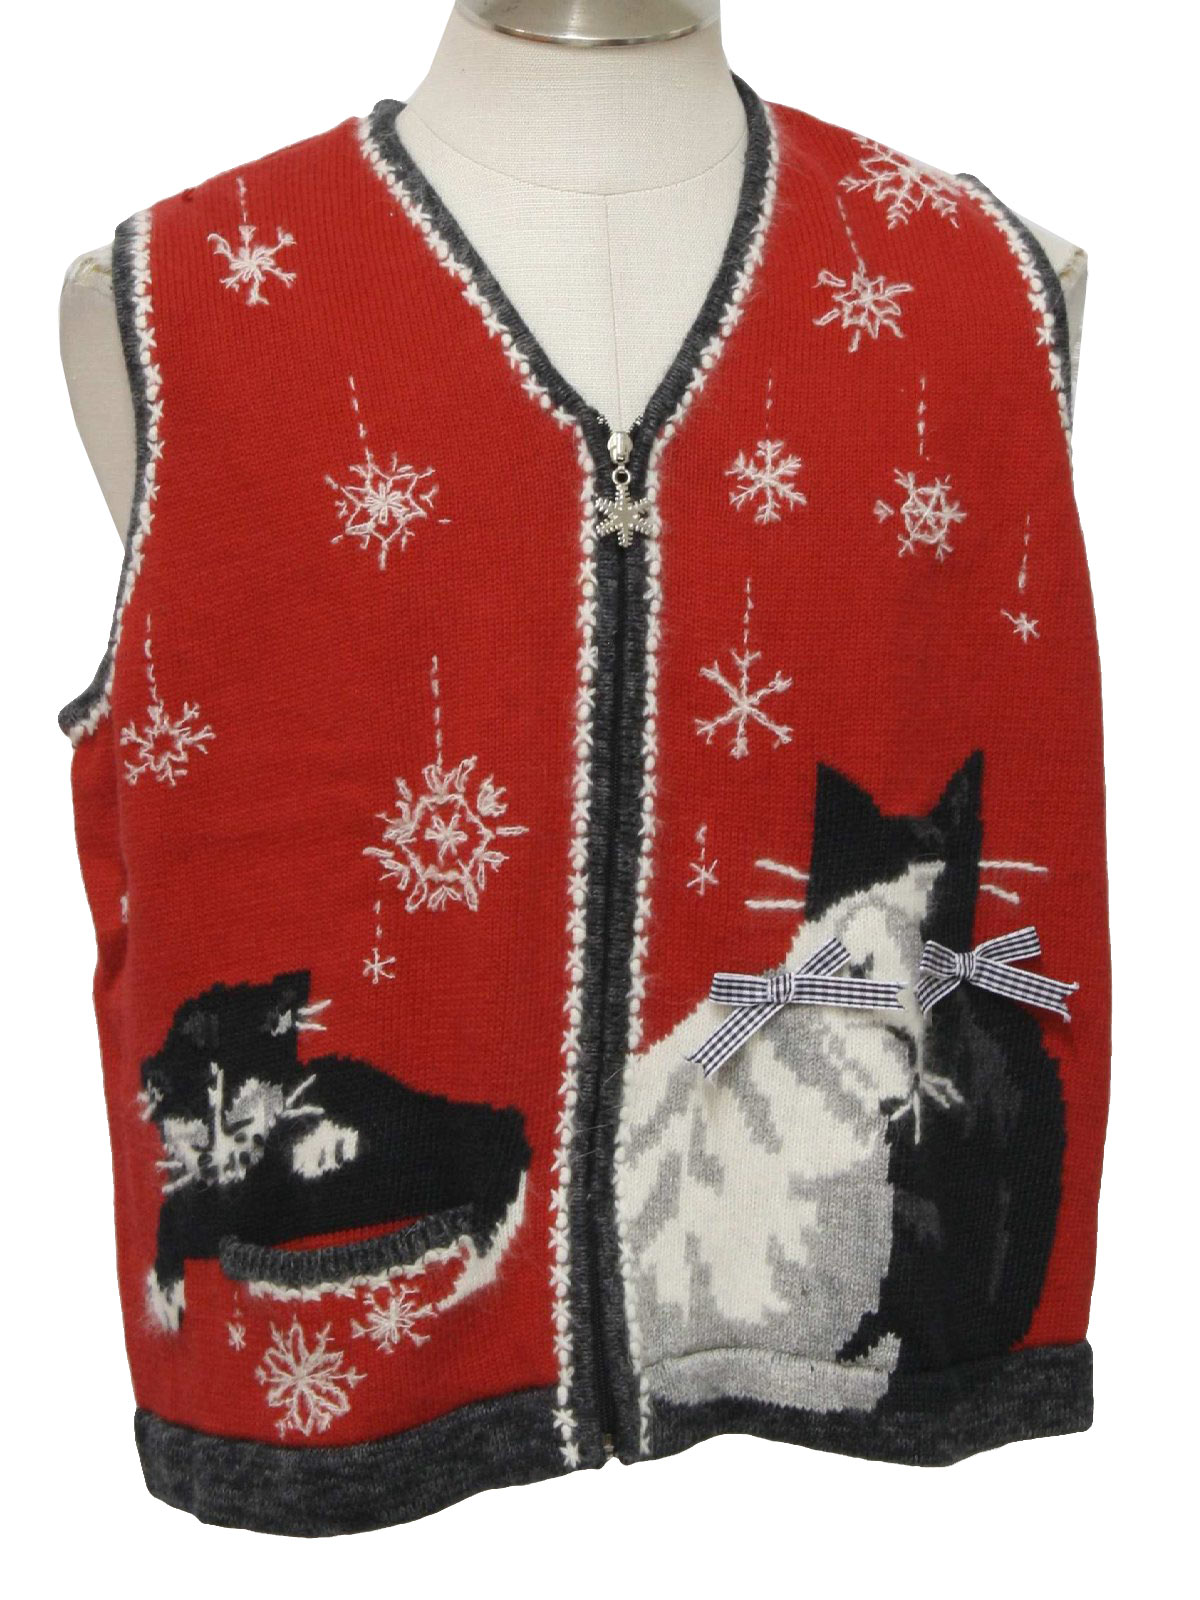 Kitten christmas sweater. Cheap clothing stores